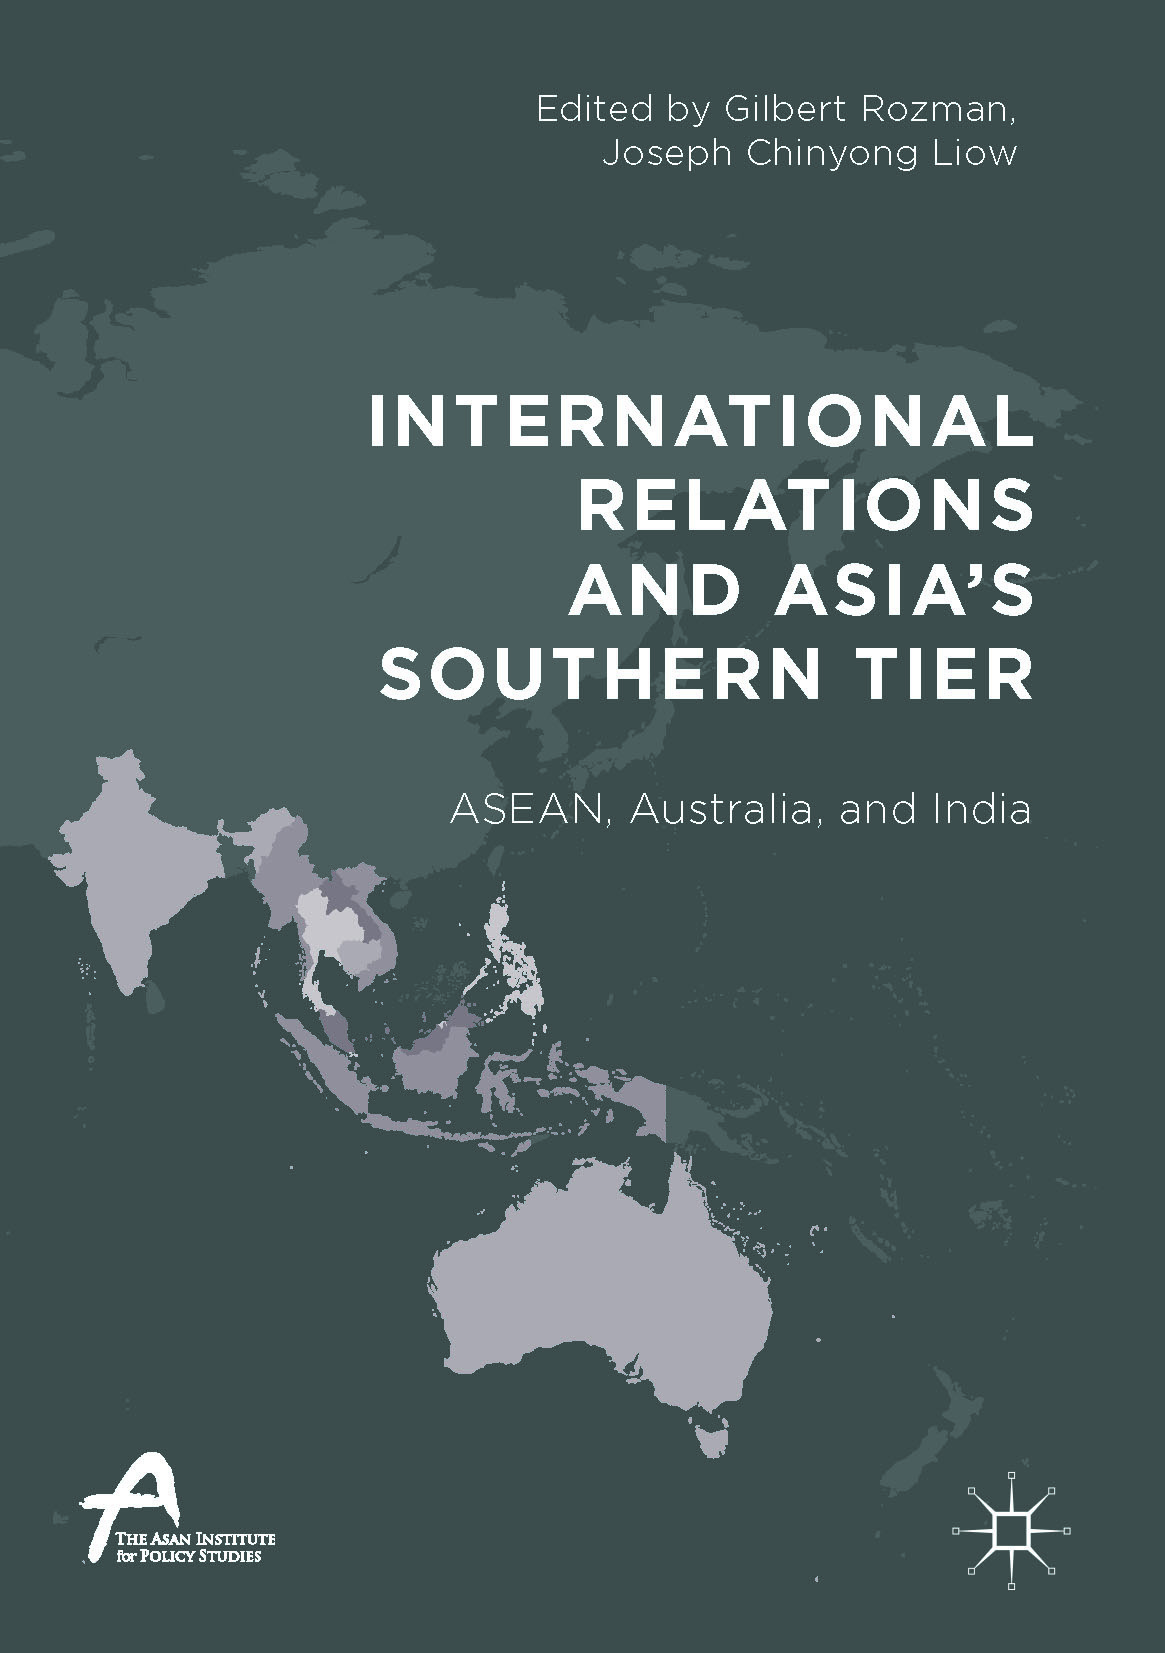 Liow, Joseph Chinyong - International Relations and Asia's Southern Tier, ebook